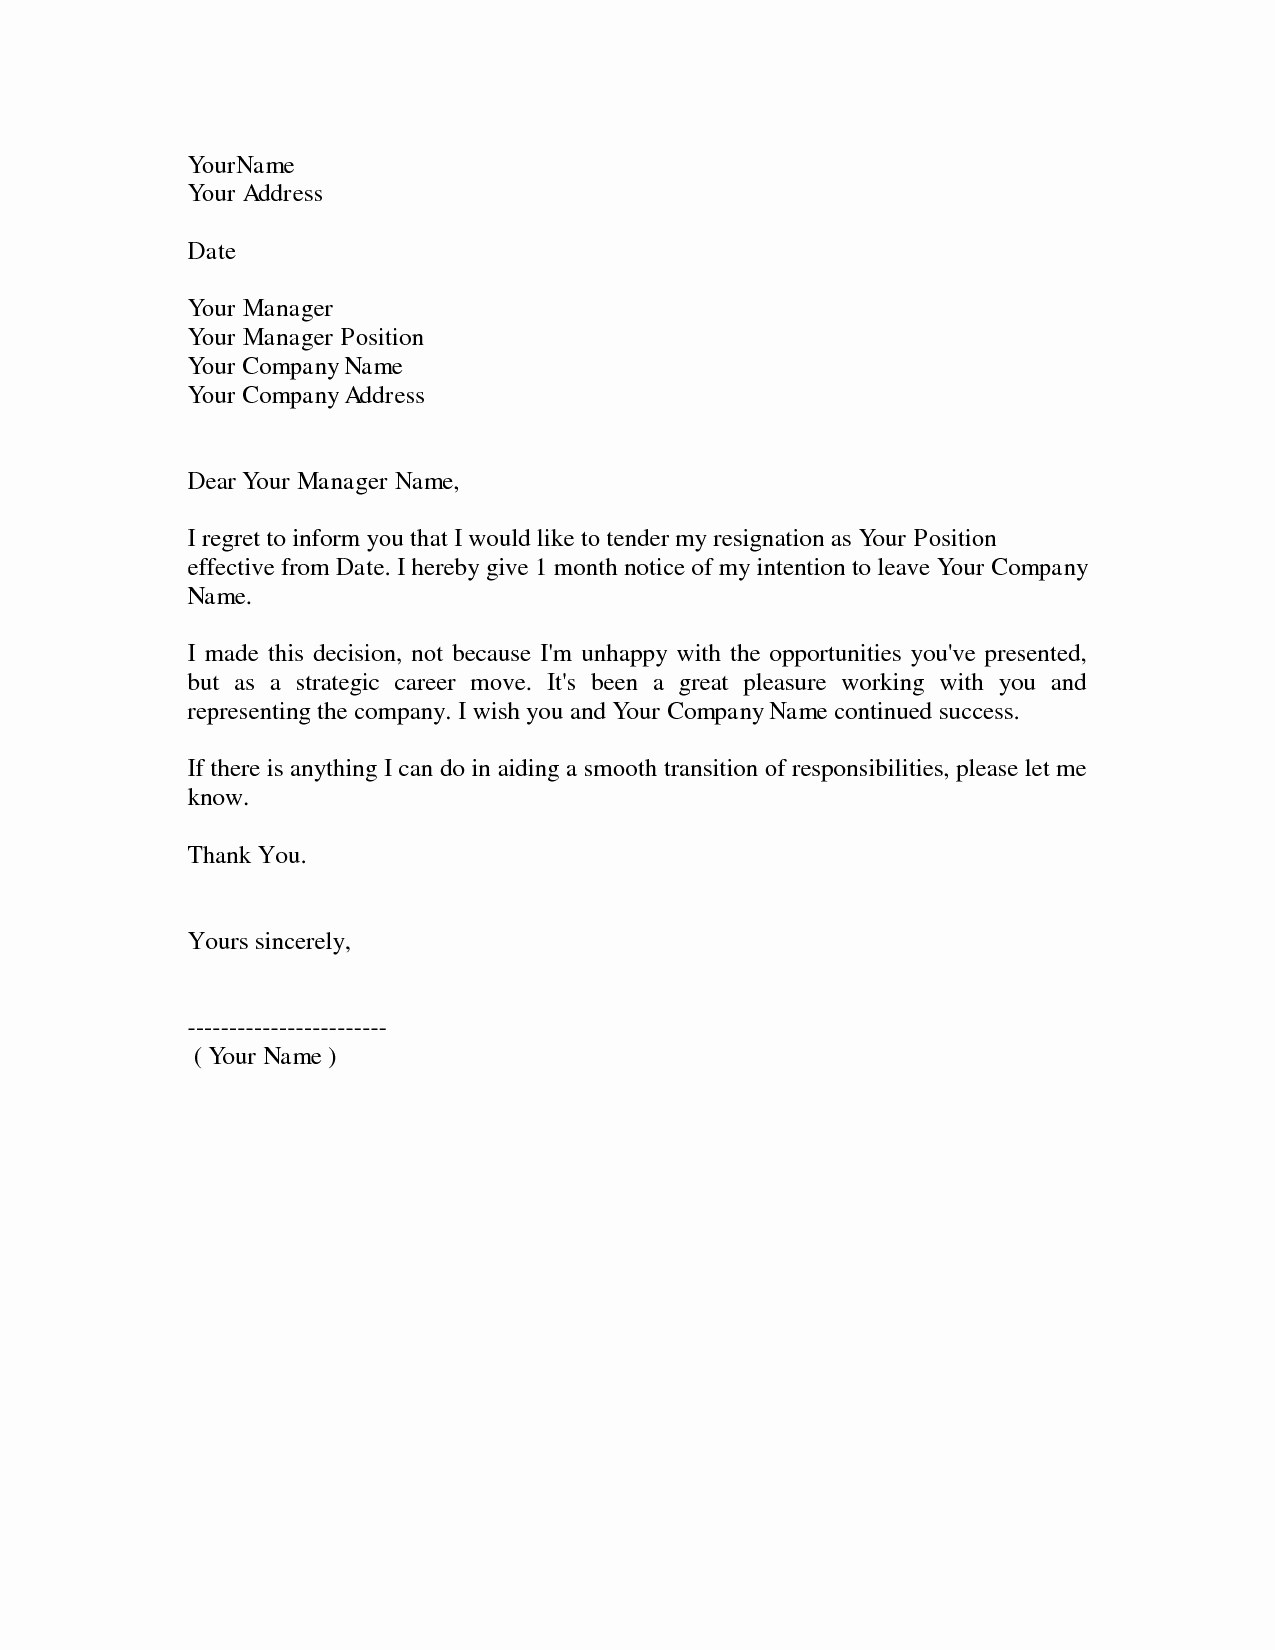 Letter Of Resignation Template Download Beautiful Download Resignation Letters Pdf & Doc